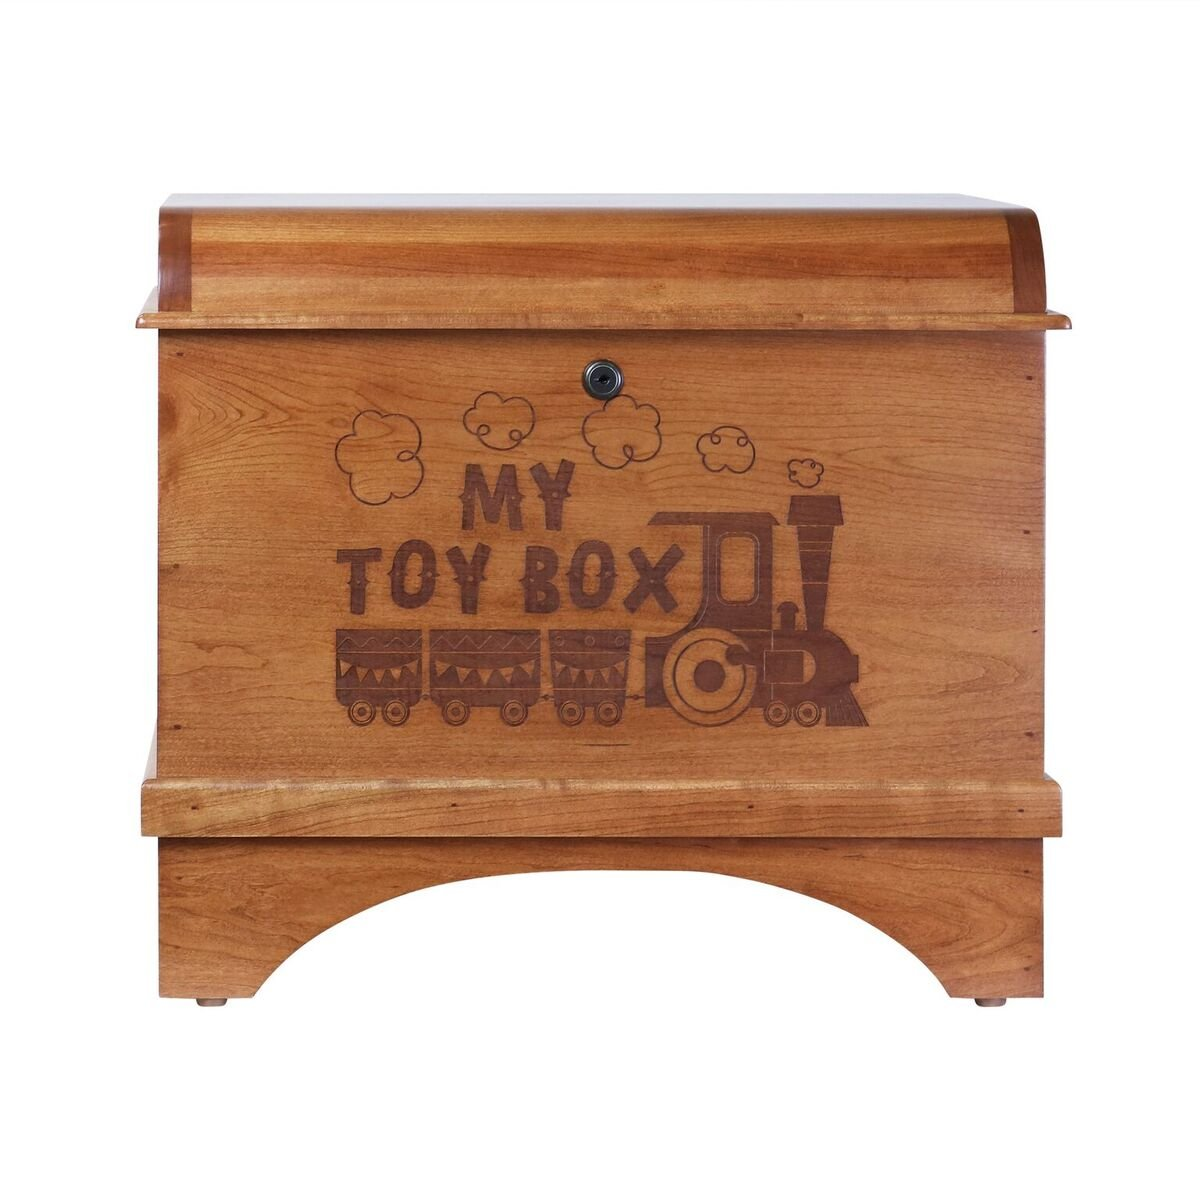 Toy Box Storage Hope Chest for Children's Birthday gift ideas for Daughter Son Boys and Girls, and Grandchildren Made of Cherry with lock Made in USA By Rooms Organized (My Toy Box)